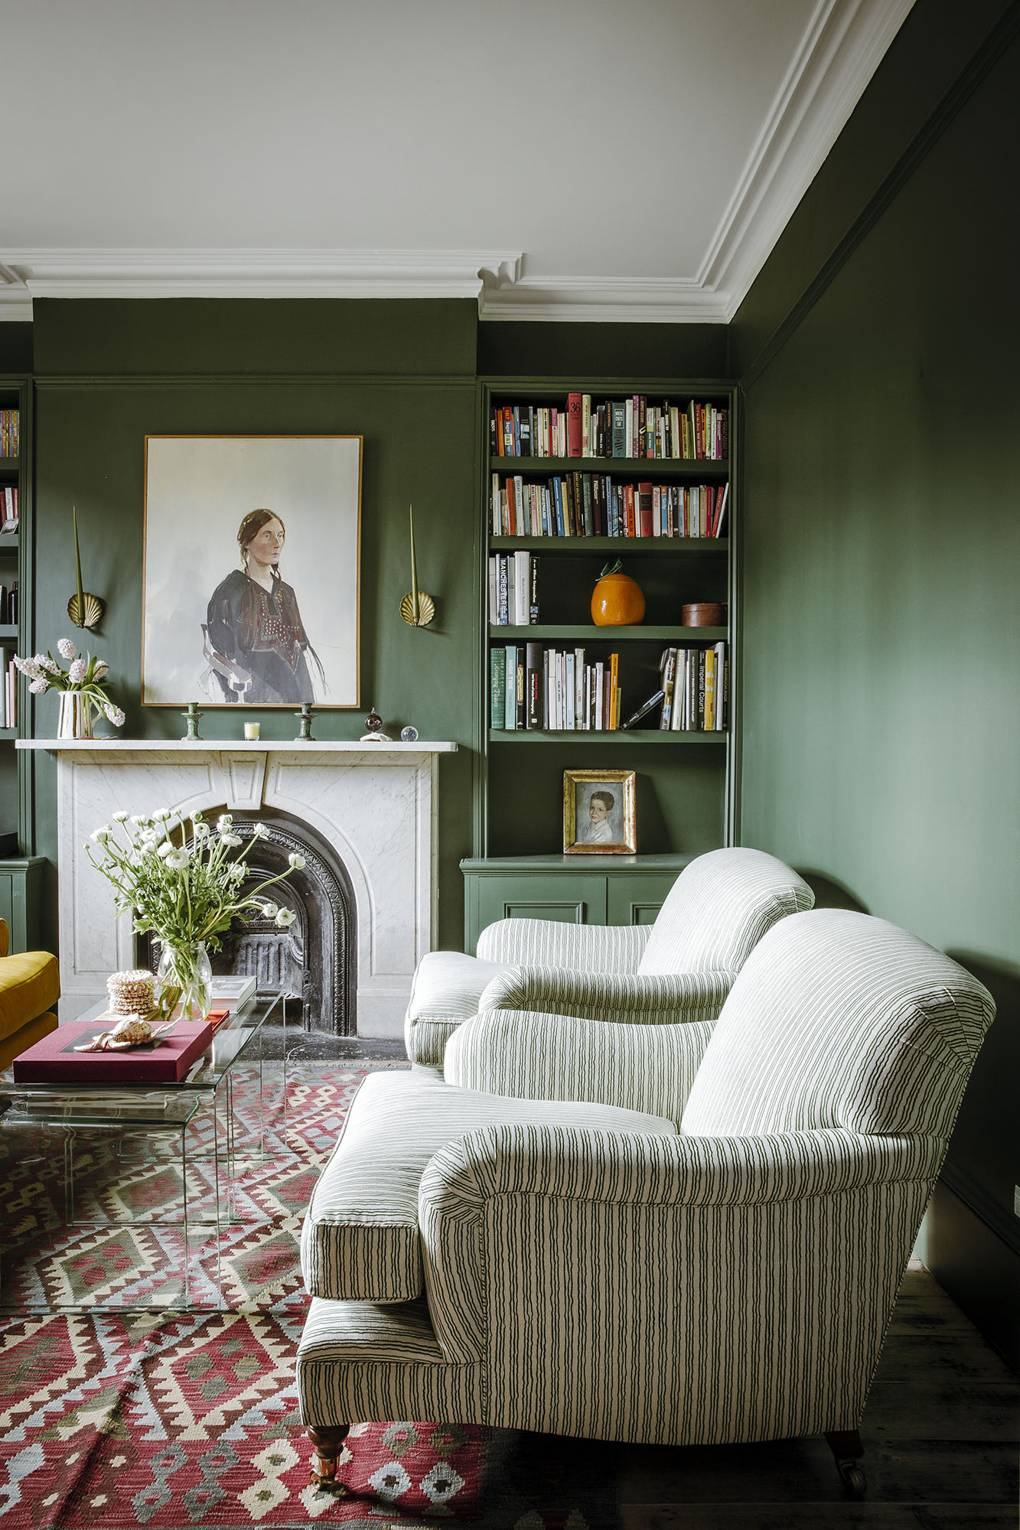 this is a 2021 home trend using dark hue colour palette